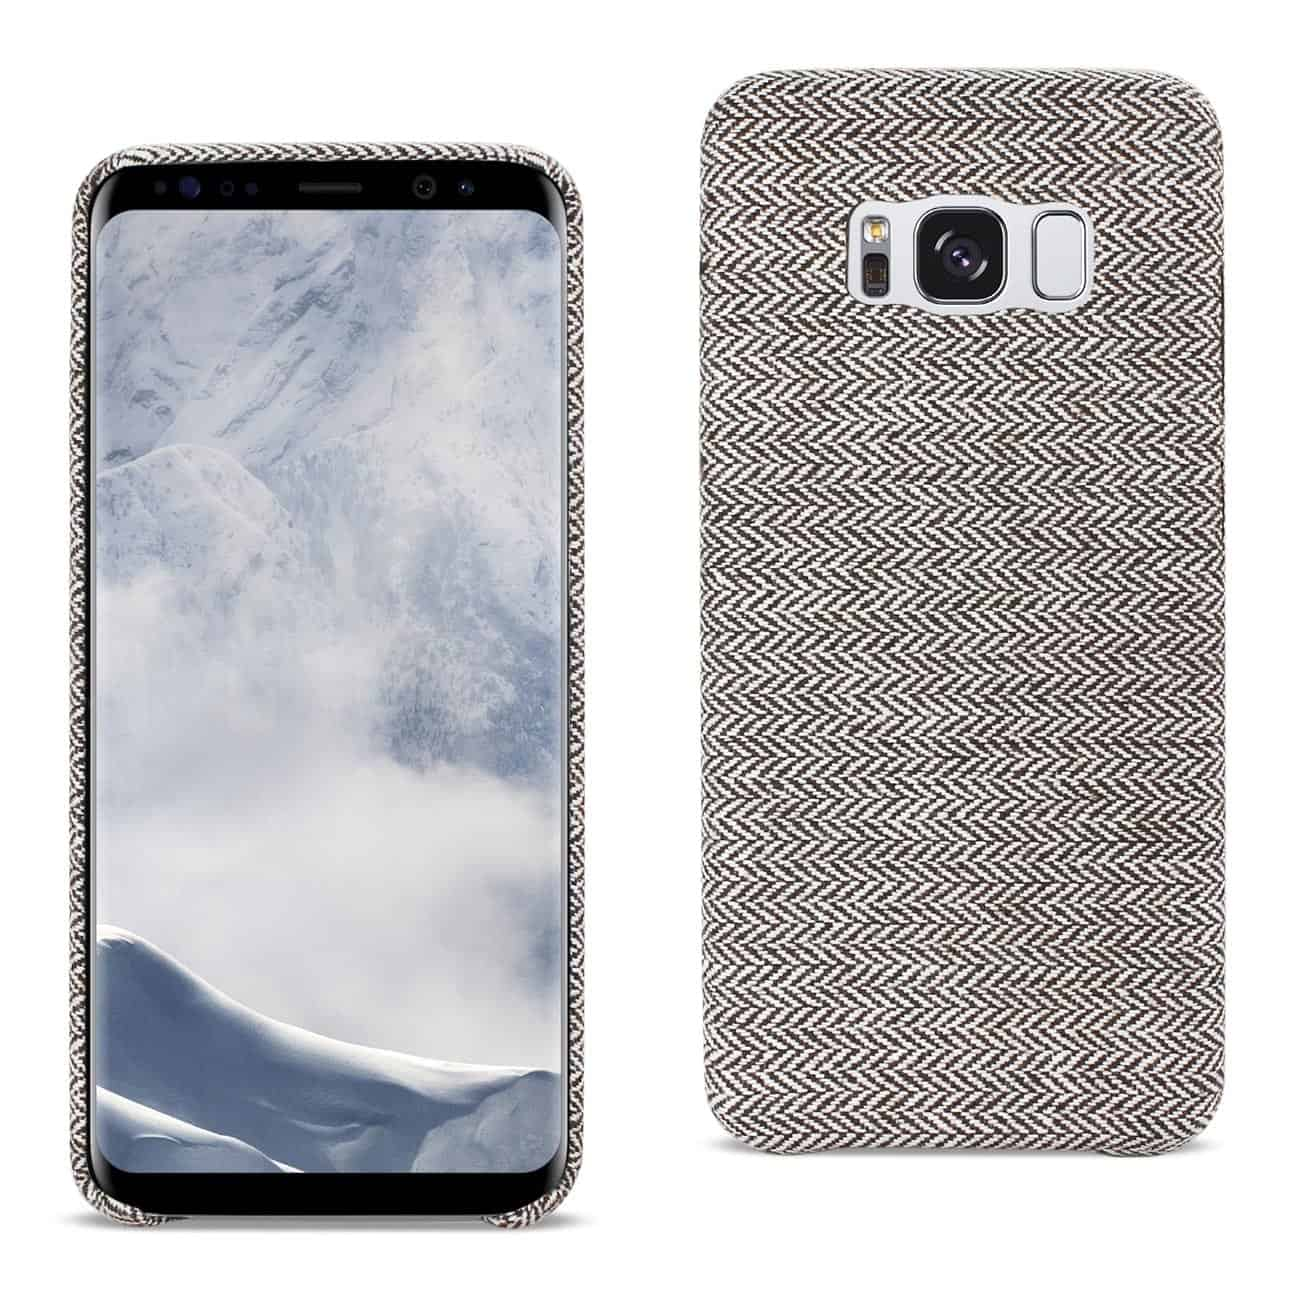 SAMSUNG GALAXY S8 EDGE HERRINGBONE FABRIC IN DARK GRAY